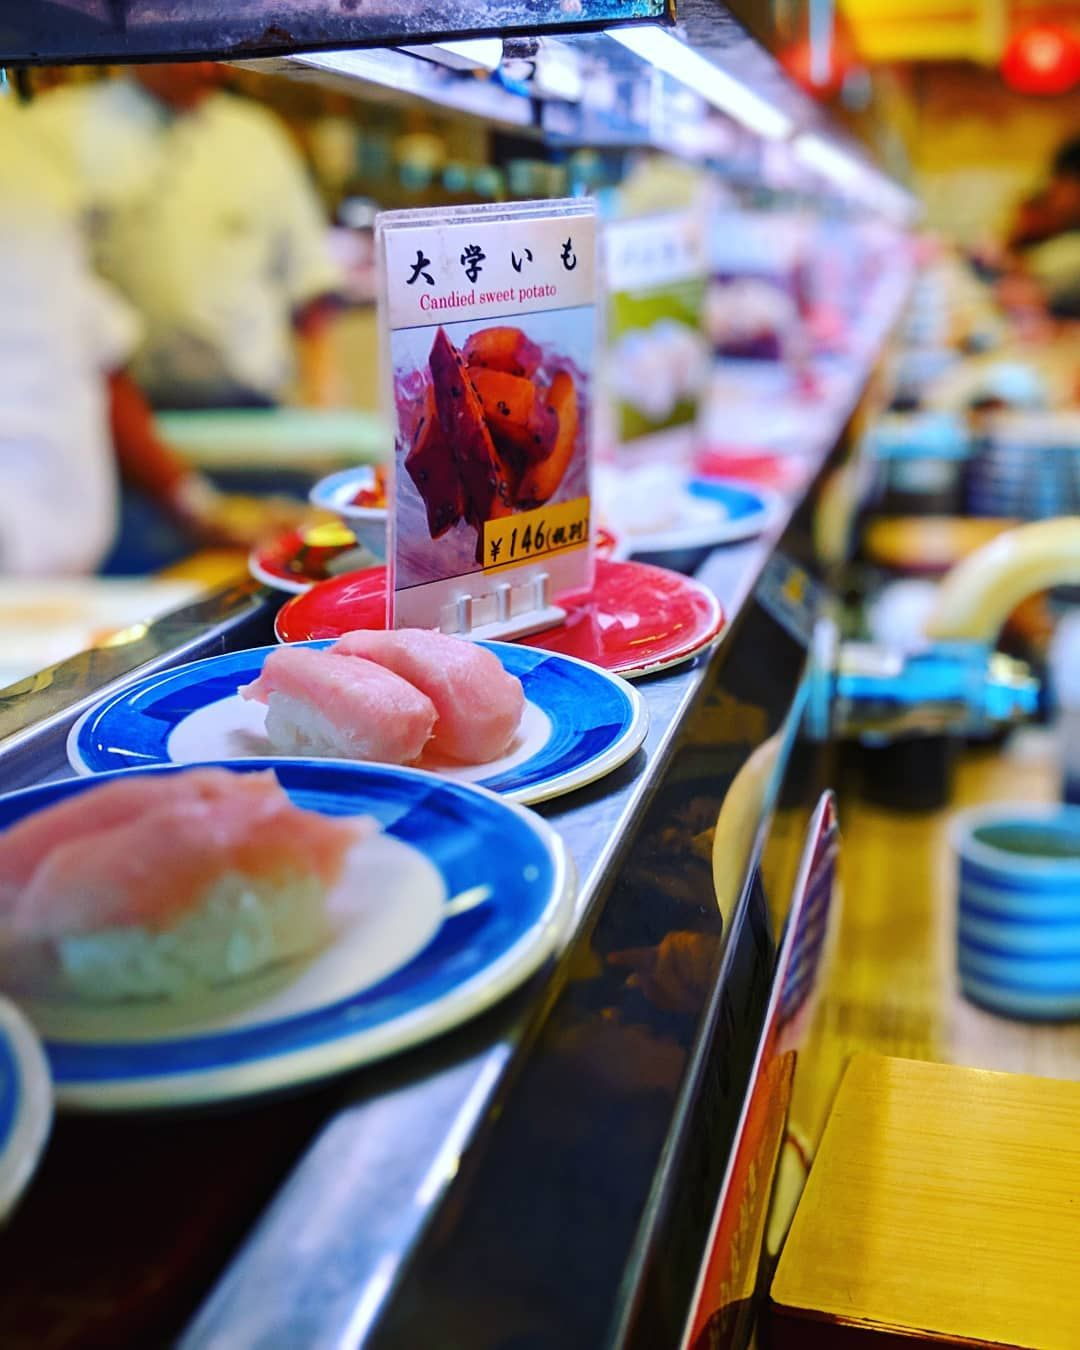 [New] The 10 Best Home Decor (with Pictures) -  Conveyor belt sushi  . . Well done Japan. Well done.  . . . . . #kyoto #japan #kyotojapan #sushi #conveyorbeltsushi #lunchbreak #lunch #foodporn #nomnomnom #happyplace #japanese #japanesefood #japan_of_insta #rycurie #remoteyear #kyotofood #kyototravel #japantravel #kyotogram #sushi #sushitime #sushirolls #sushiroll #photooftheday #seetheworld